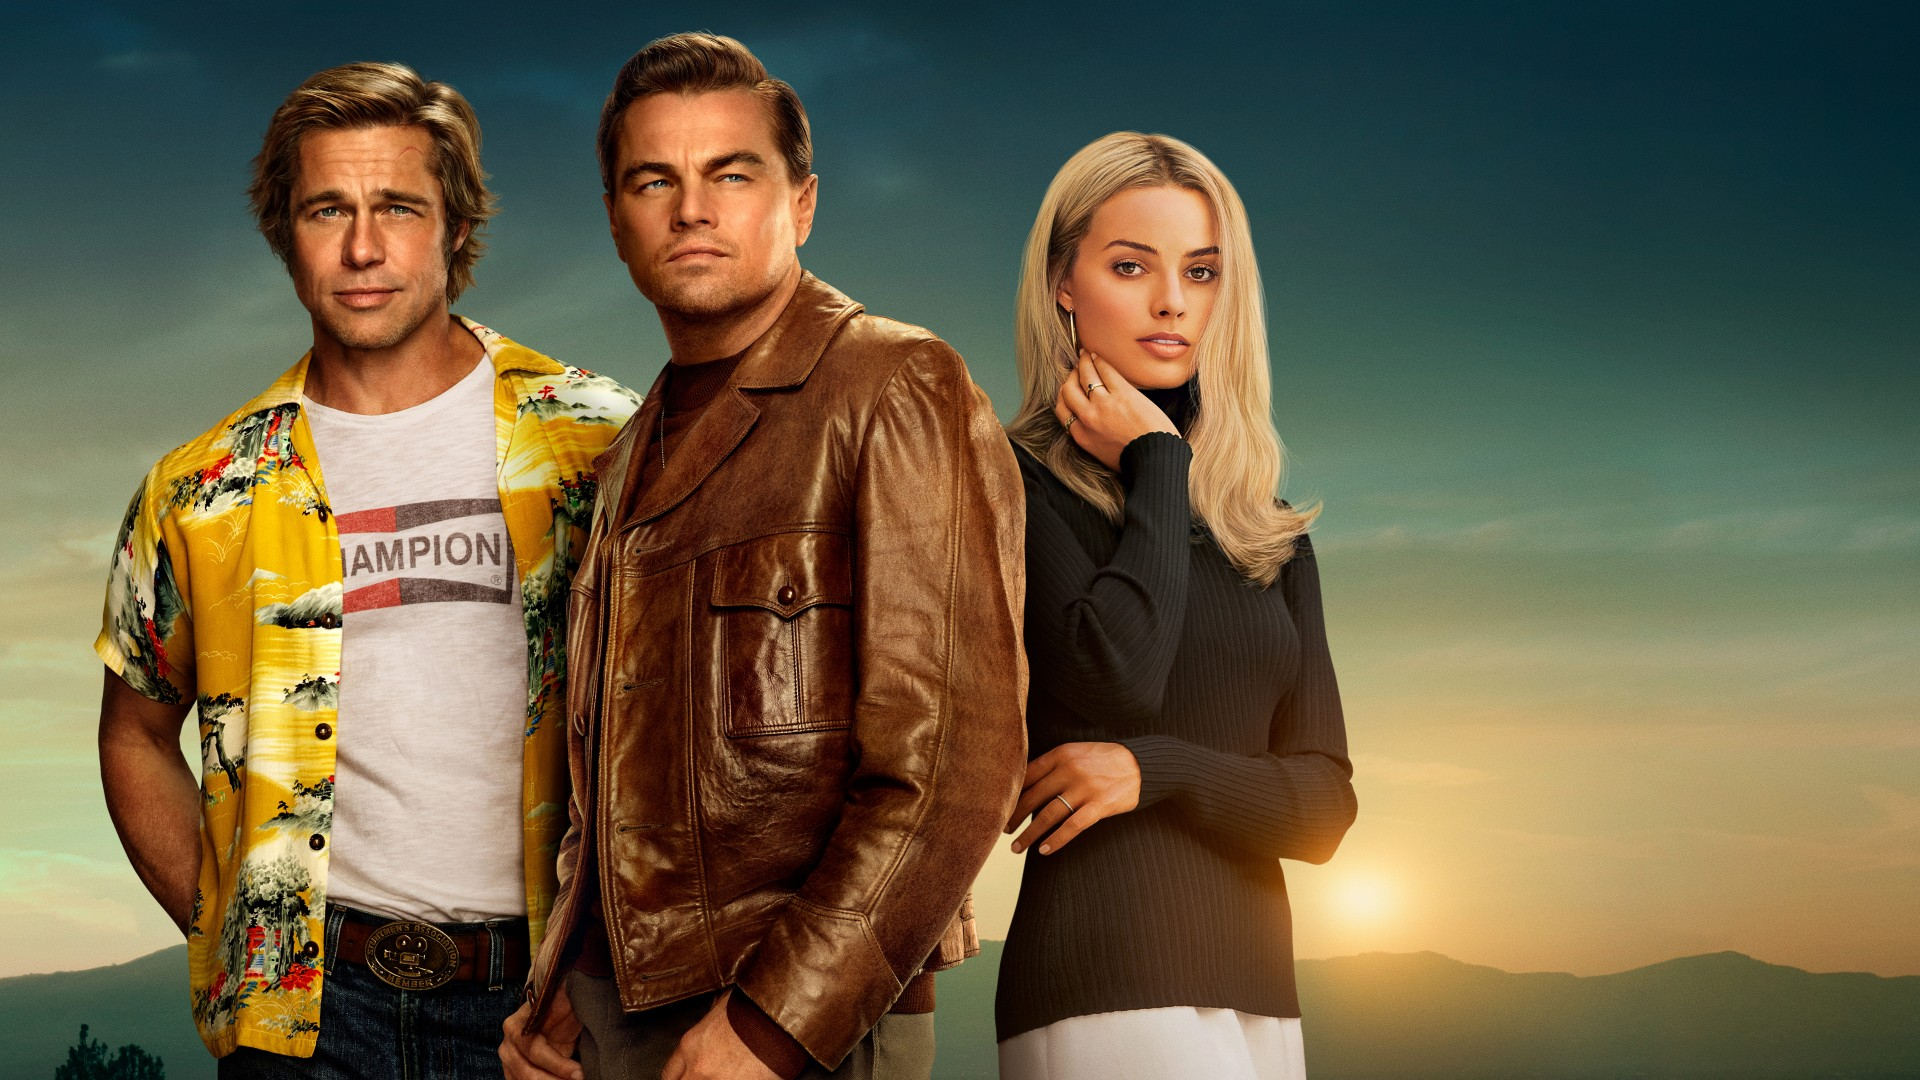 Download Wallpaper Windows 8 3d Once Upon A Time In Hollywood 4k 8k Wallpapers Hd